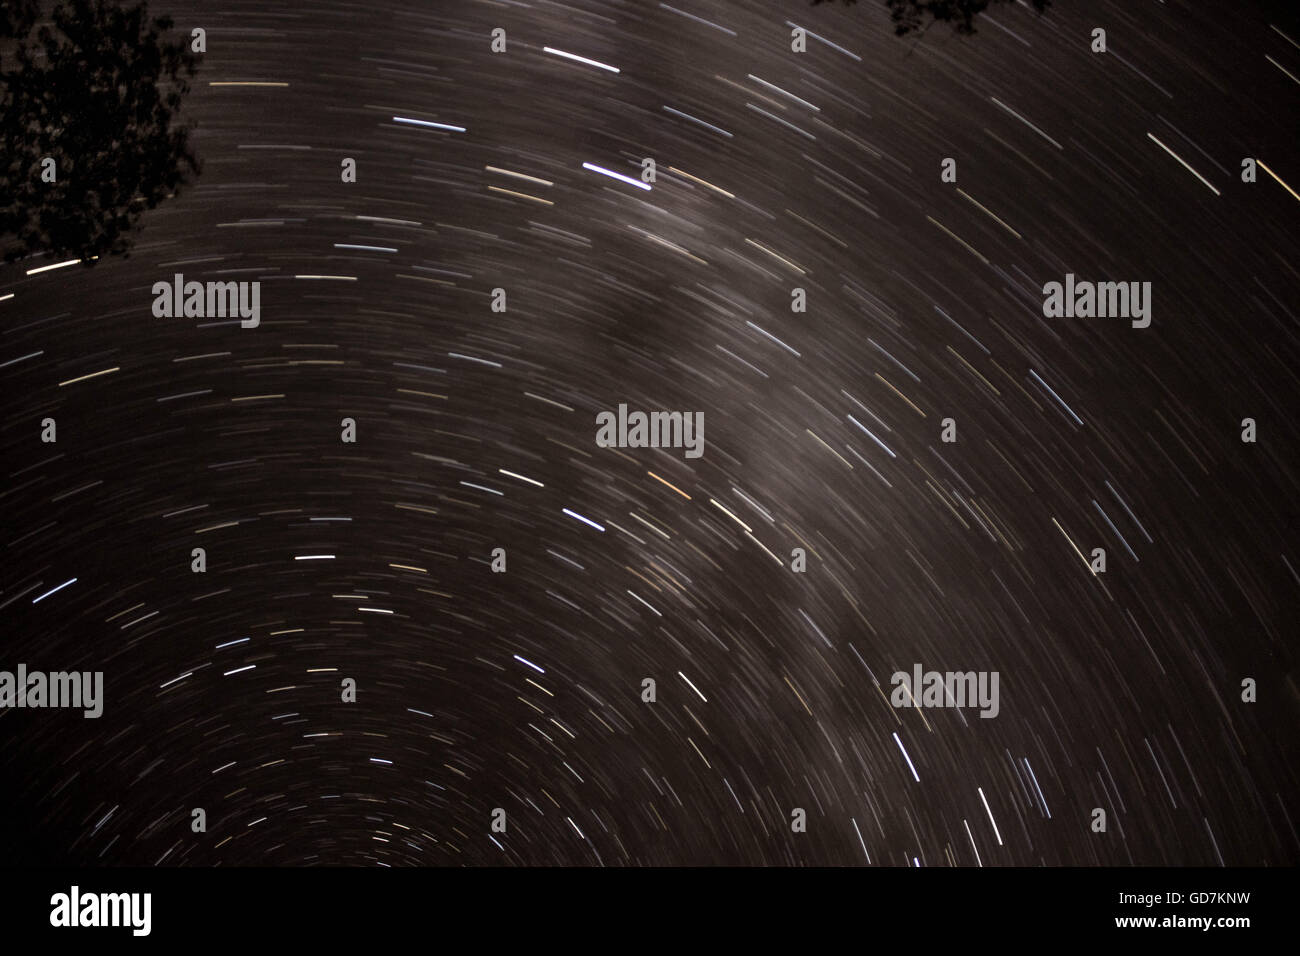 Spinning Stars in the Night Sky - Stock Image